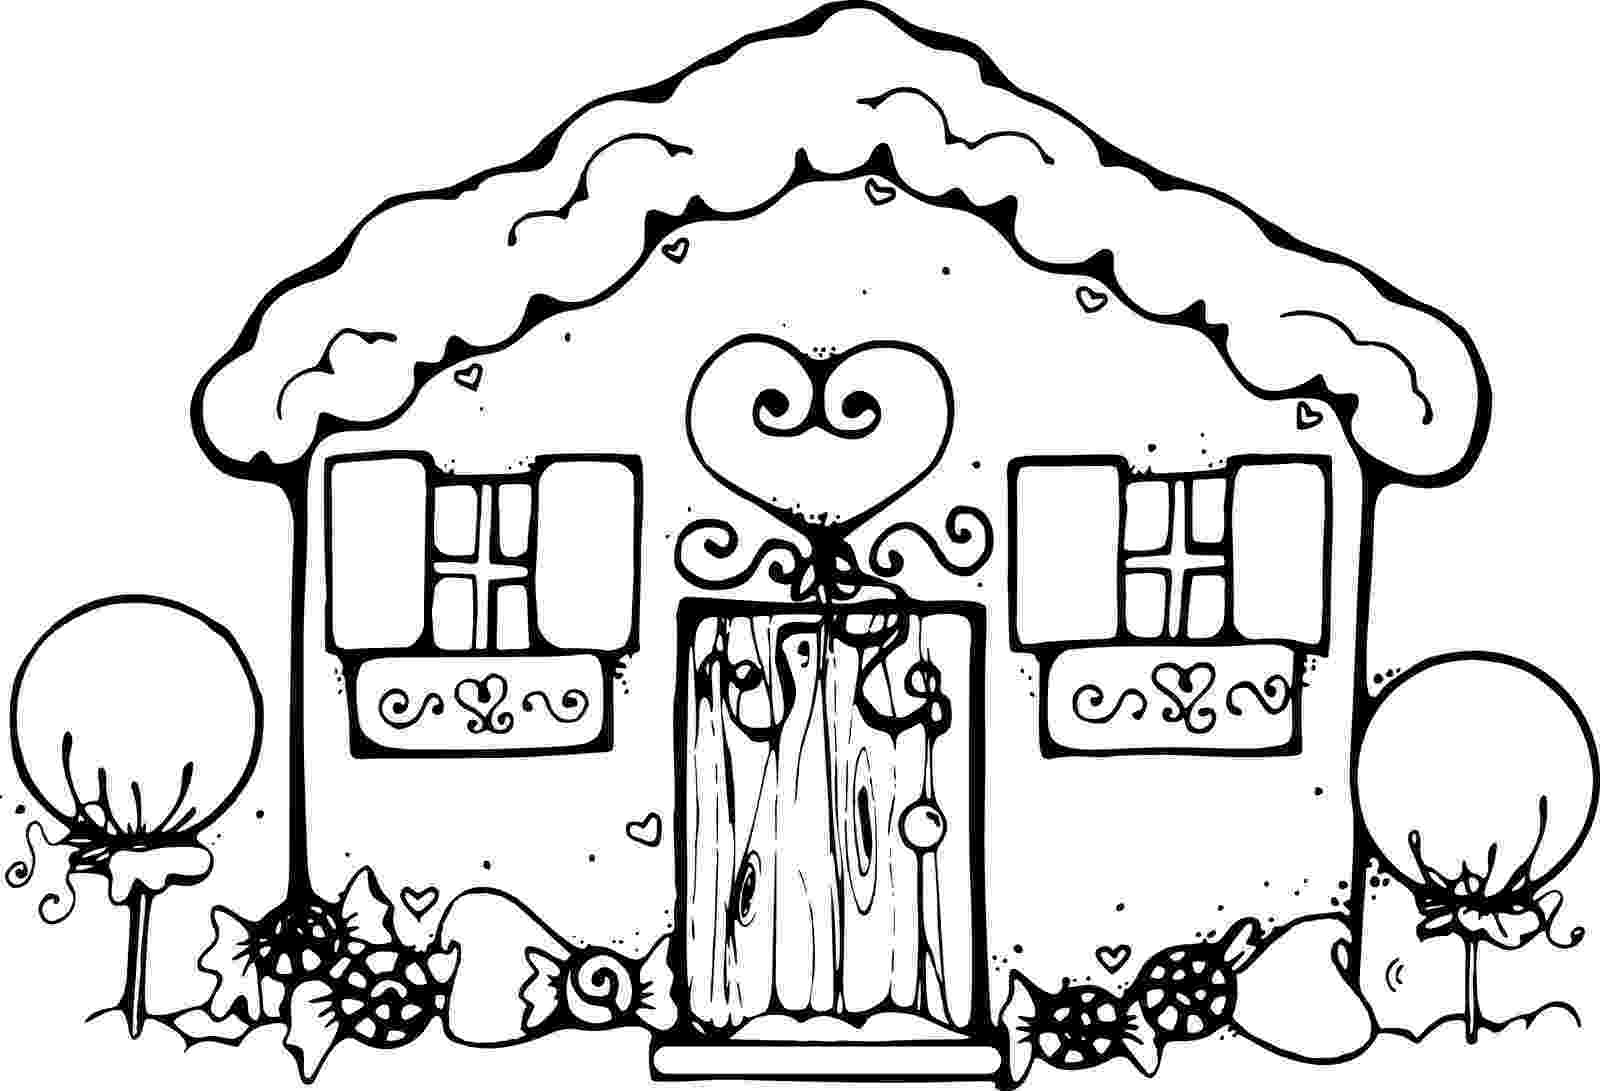 gingerbread house coloring page gingerbread house coloring pages to download and print for gingerbread house coloring page